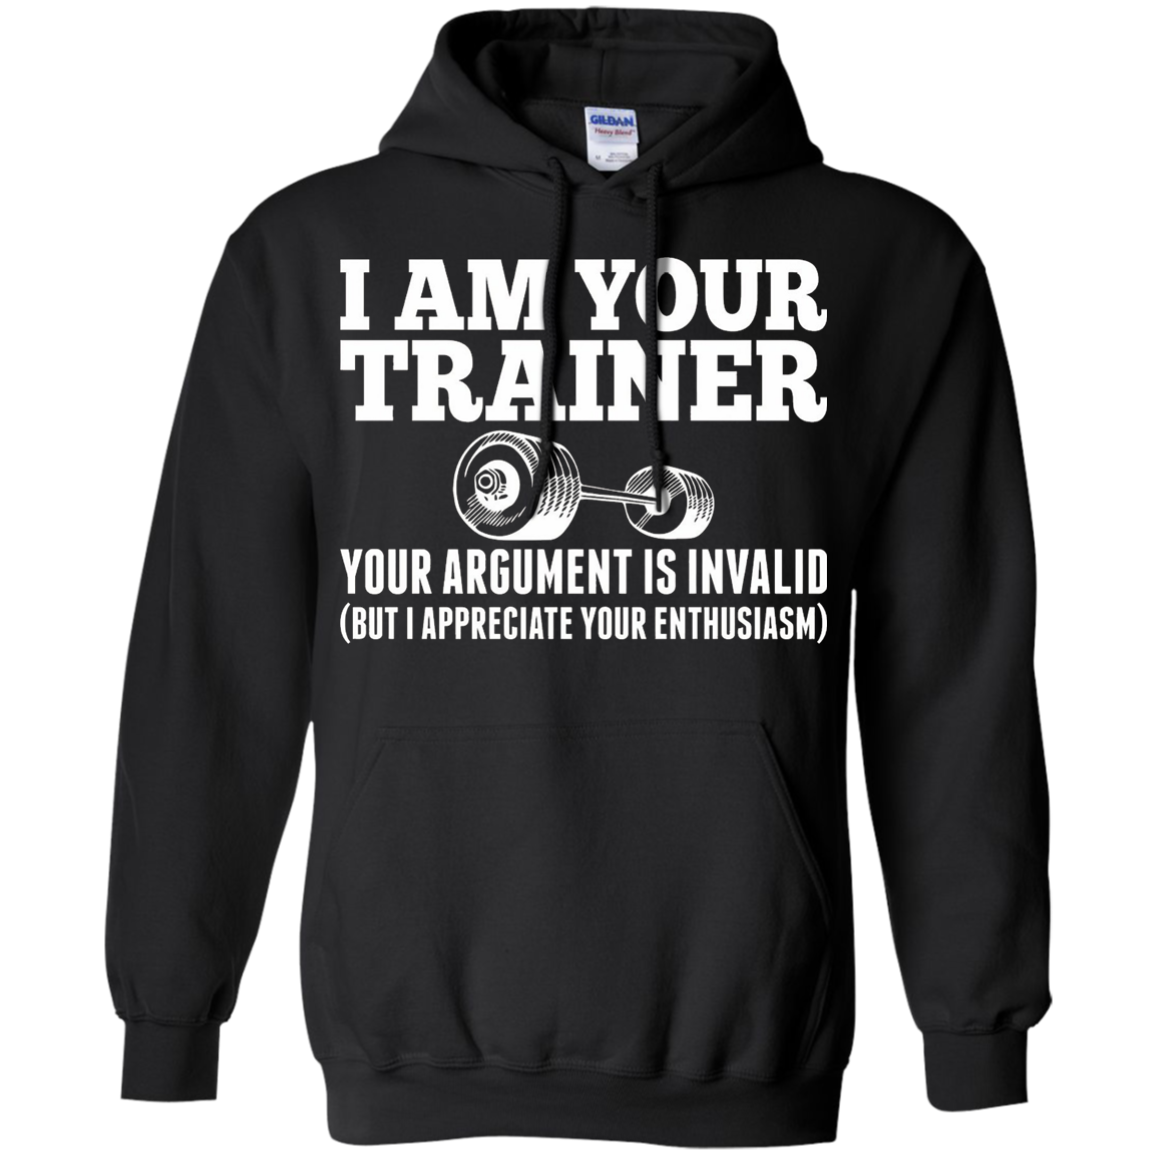 Personal Trainer Tshirt - I am your Trainer Funny Tshirt